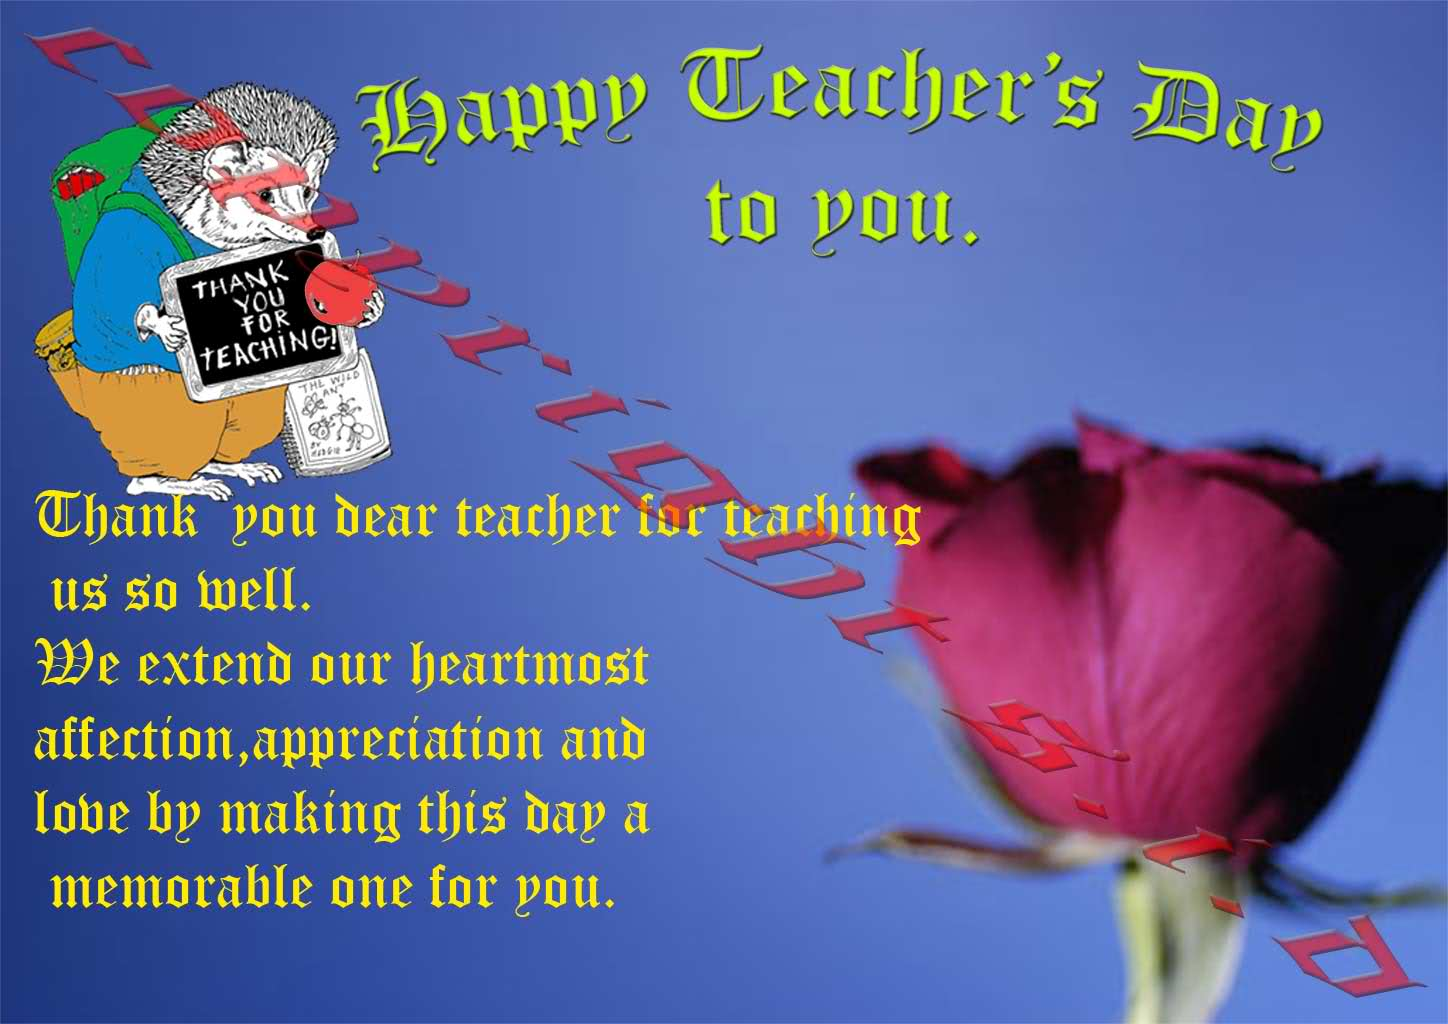 Hd wallpapers teachers day wallpaper pictures gallery http3bpspot 2bdy1sktwtwt0uk3mwxexi teachers day wishes hd wallpapers altavistaventures Image collections